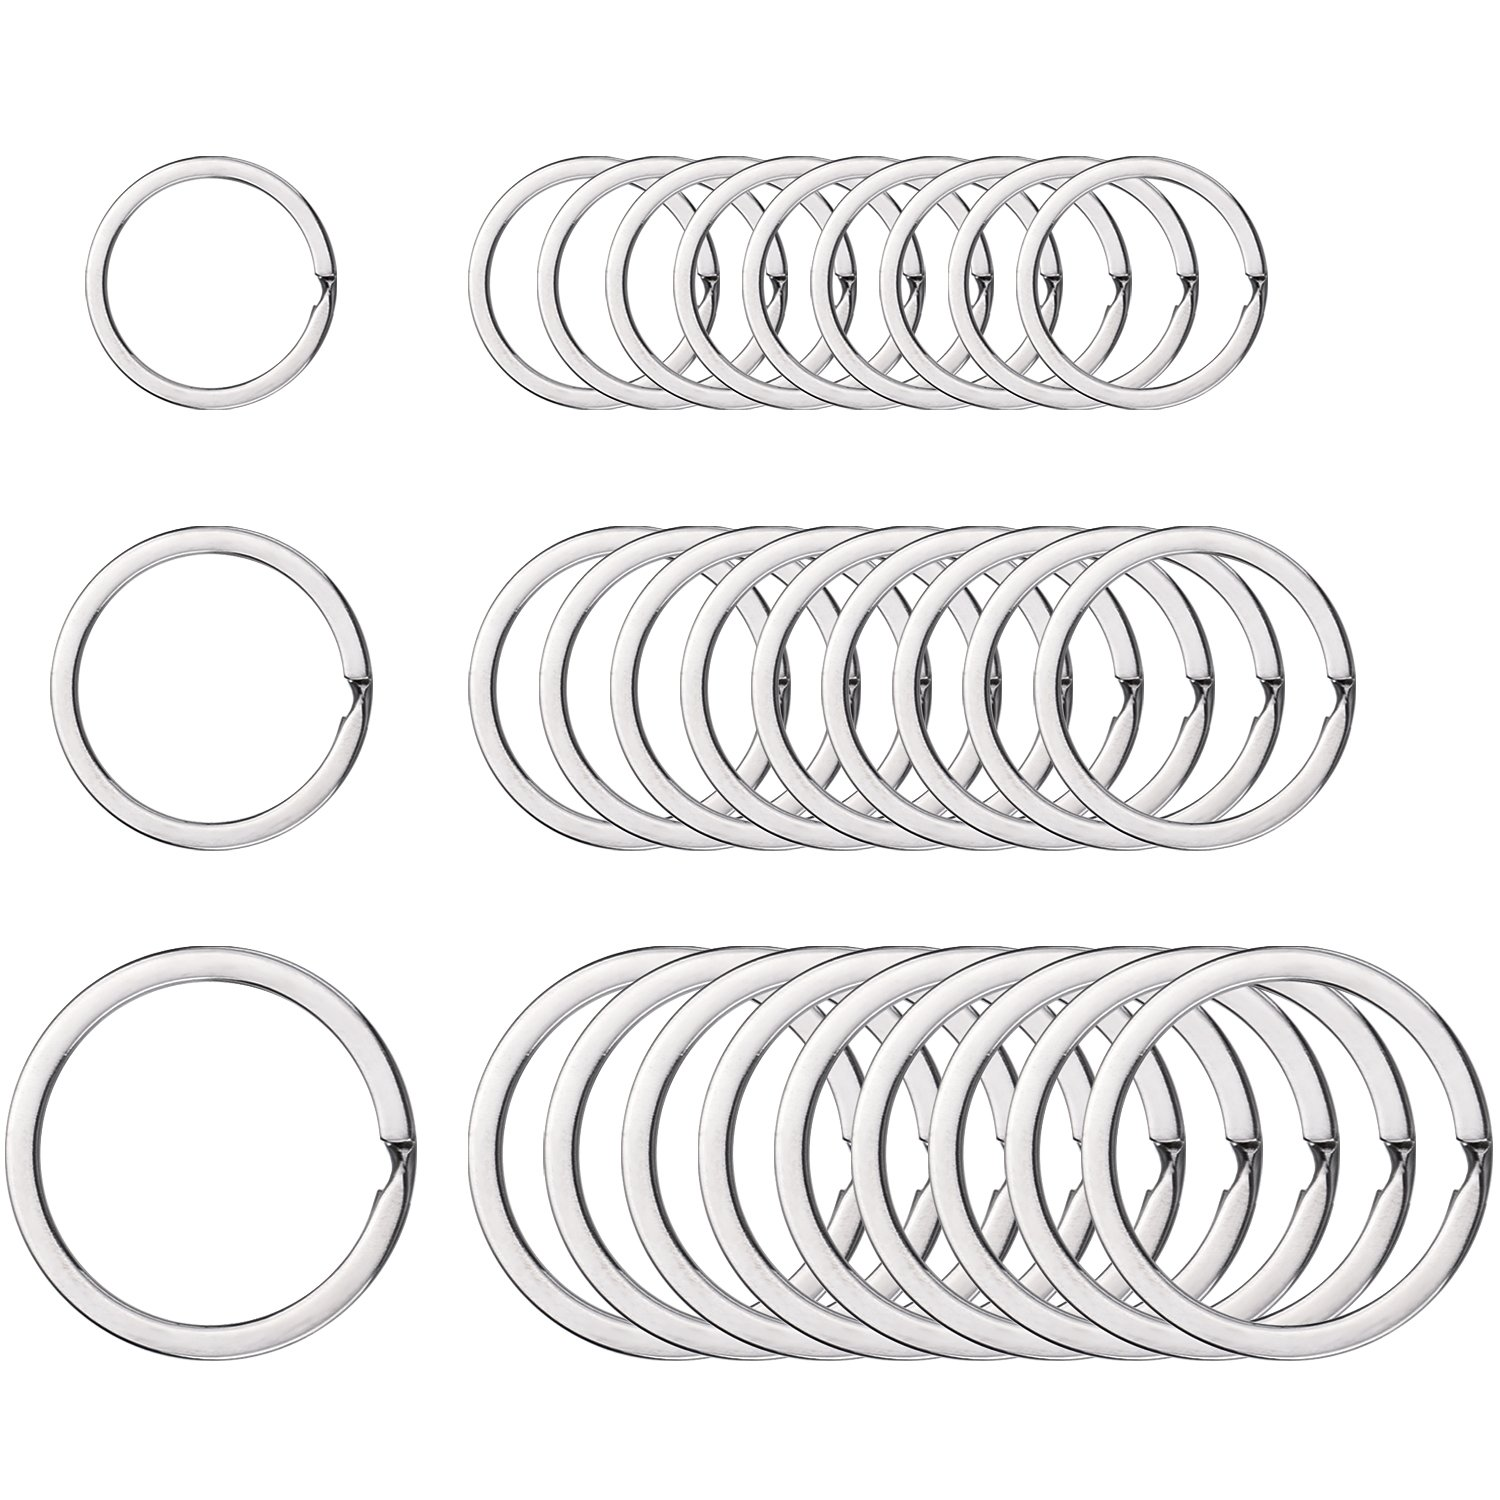 Outus Round Flat Key Chain Rings Metal Split Ring for Home Car Keys Organization, 3/4 Inch, 1 Inch and 1.25 Inch, 30 Pieces (Silver)